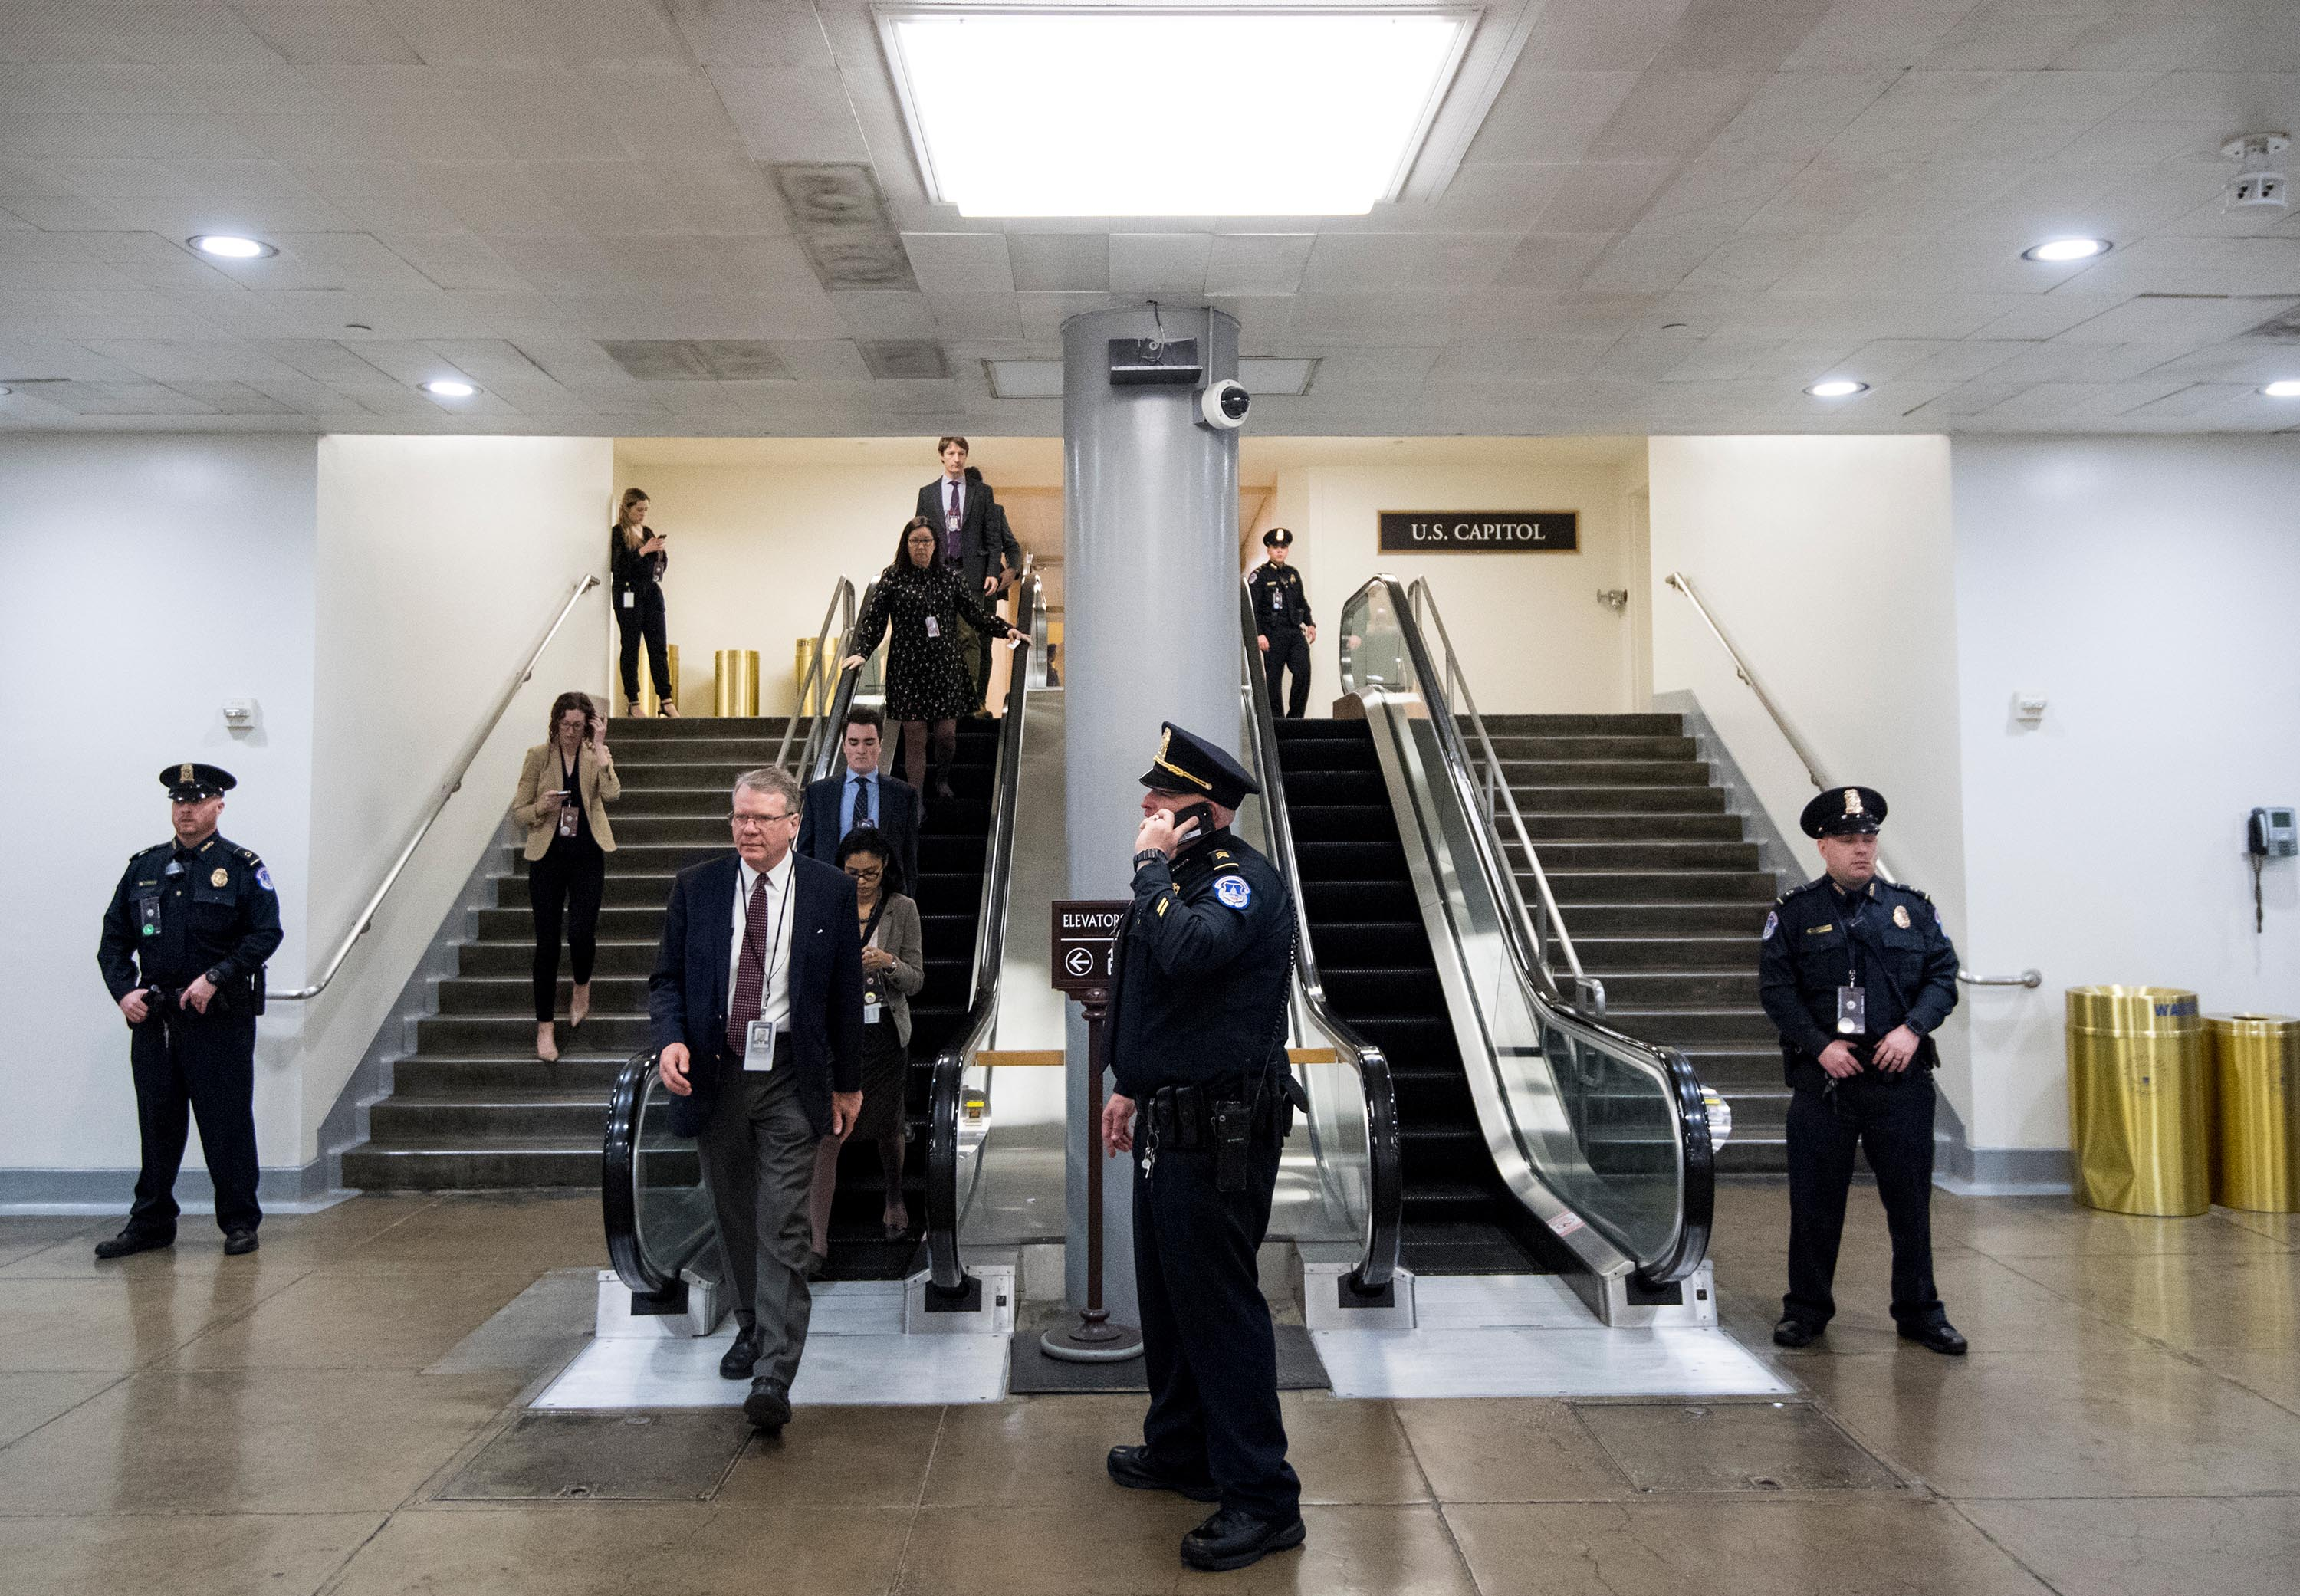 Reporters wait in the Senate subway area as Capitol Police make sure anyone entering the Capitol has a pass on Thursday, January 16.